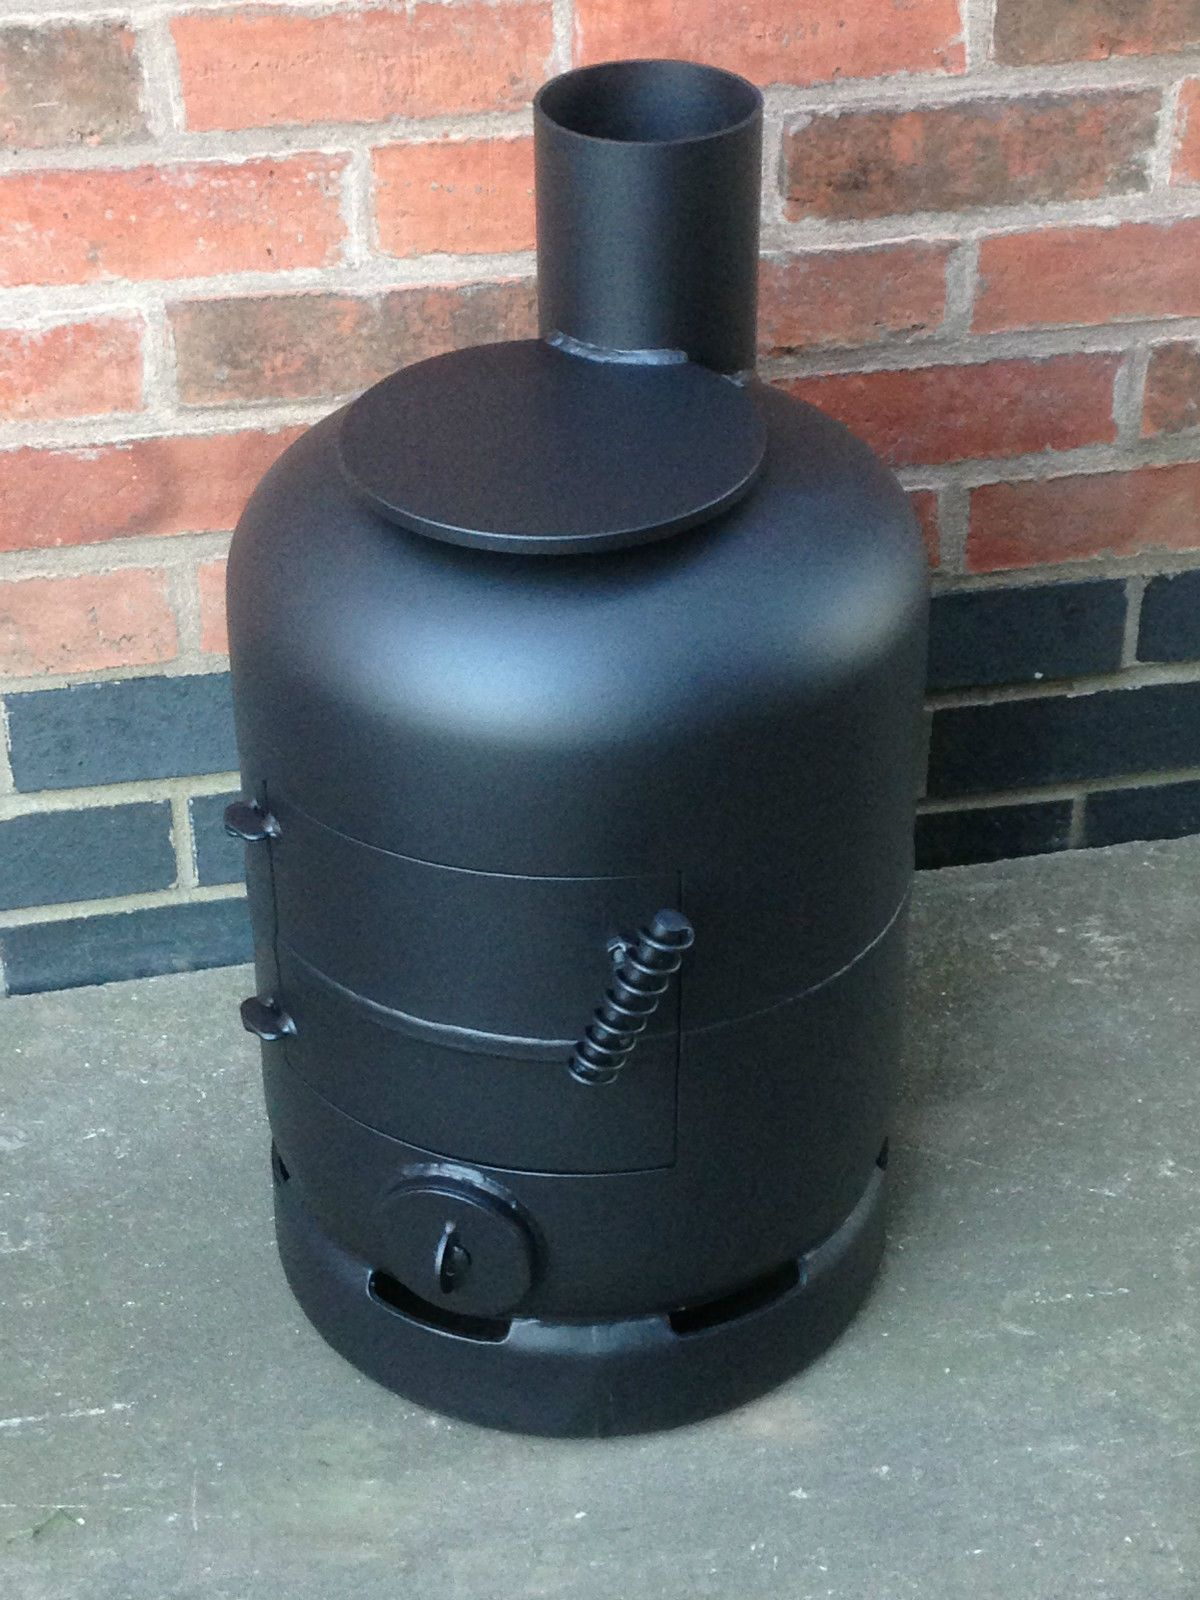 Rocket stove made from an old gas cylinder | Öfen | Pinterest ...